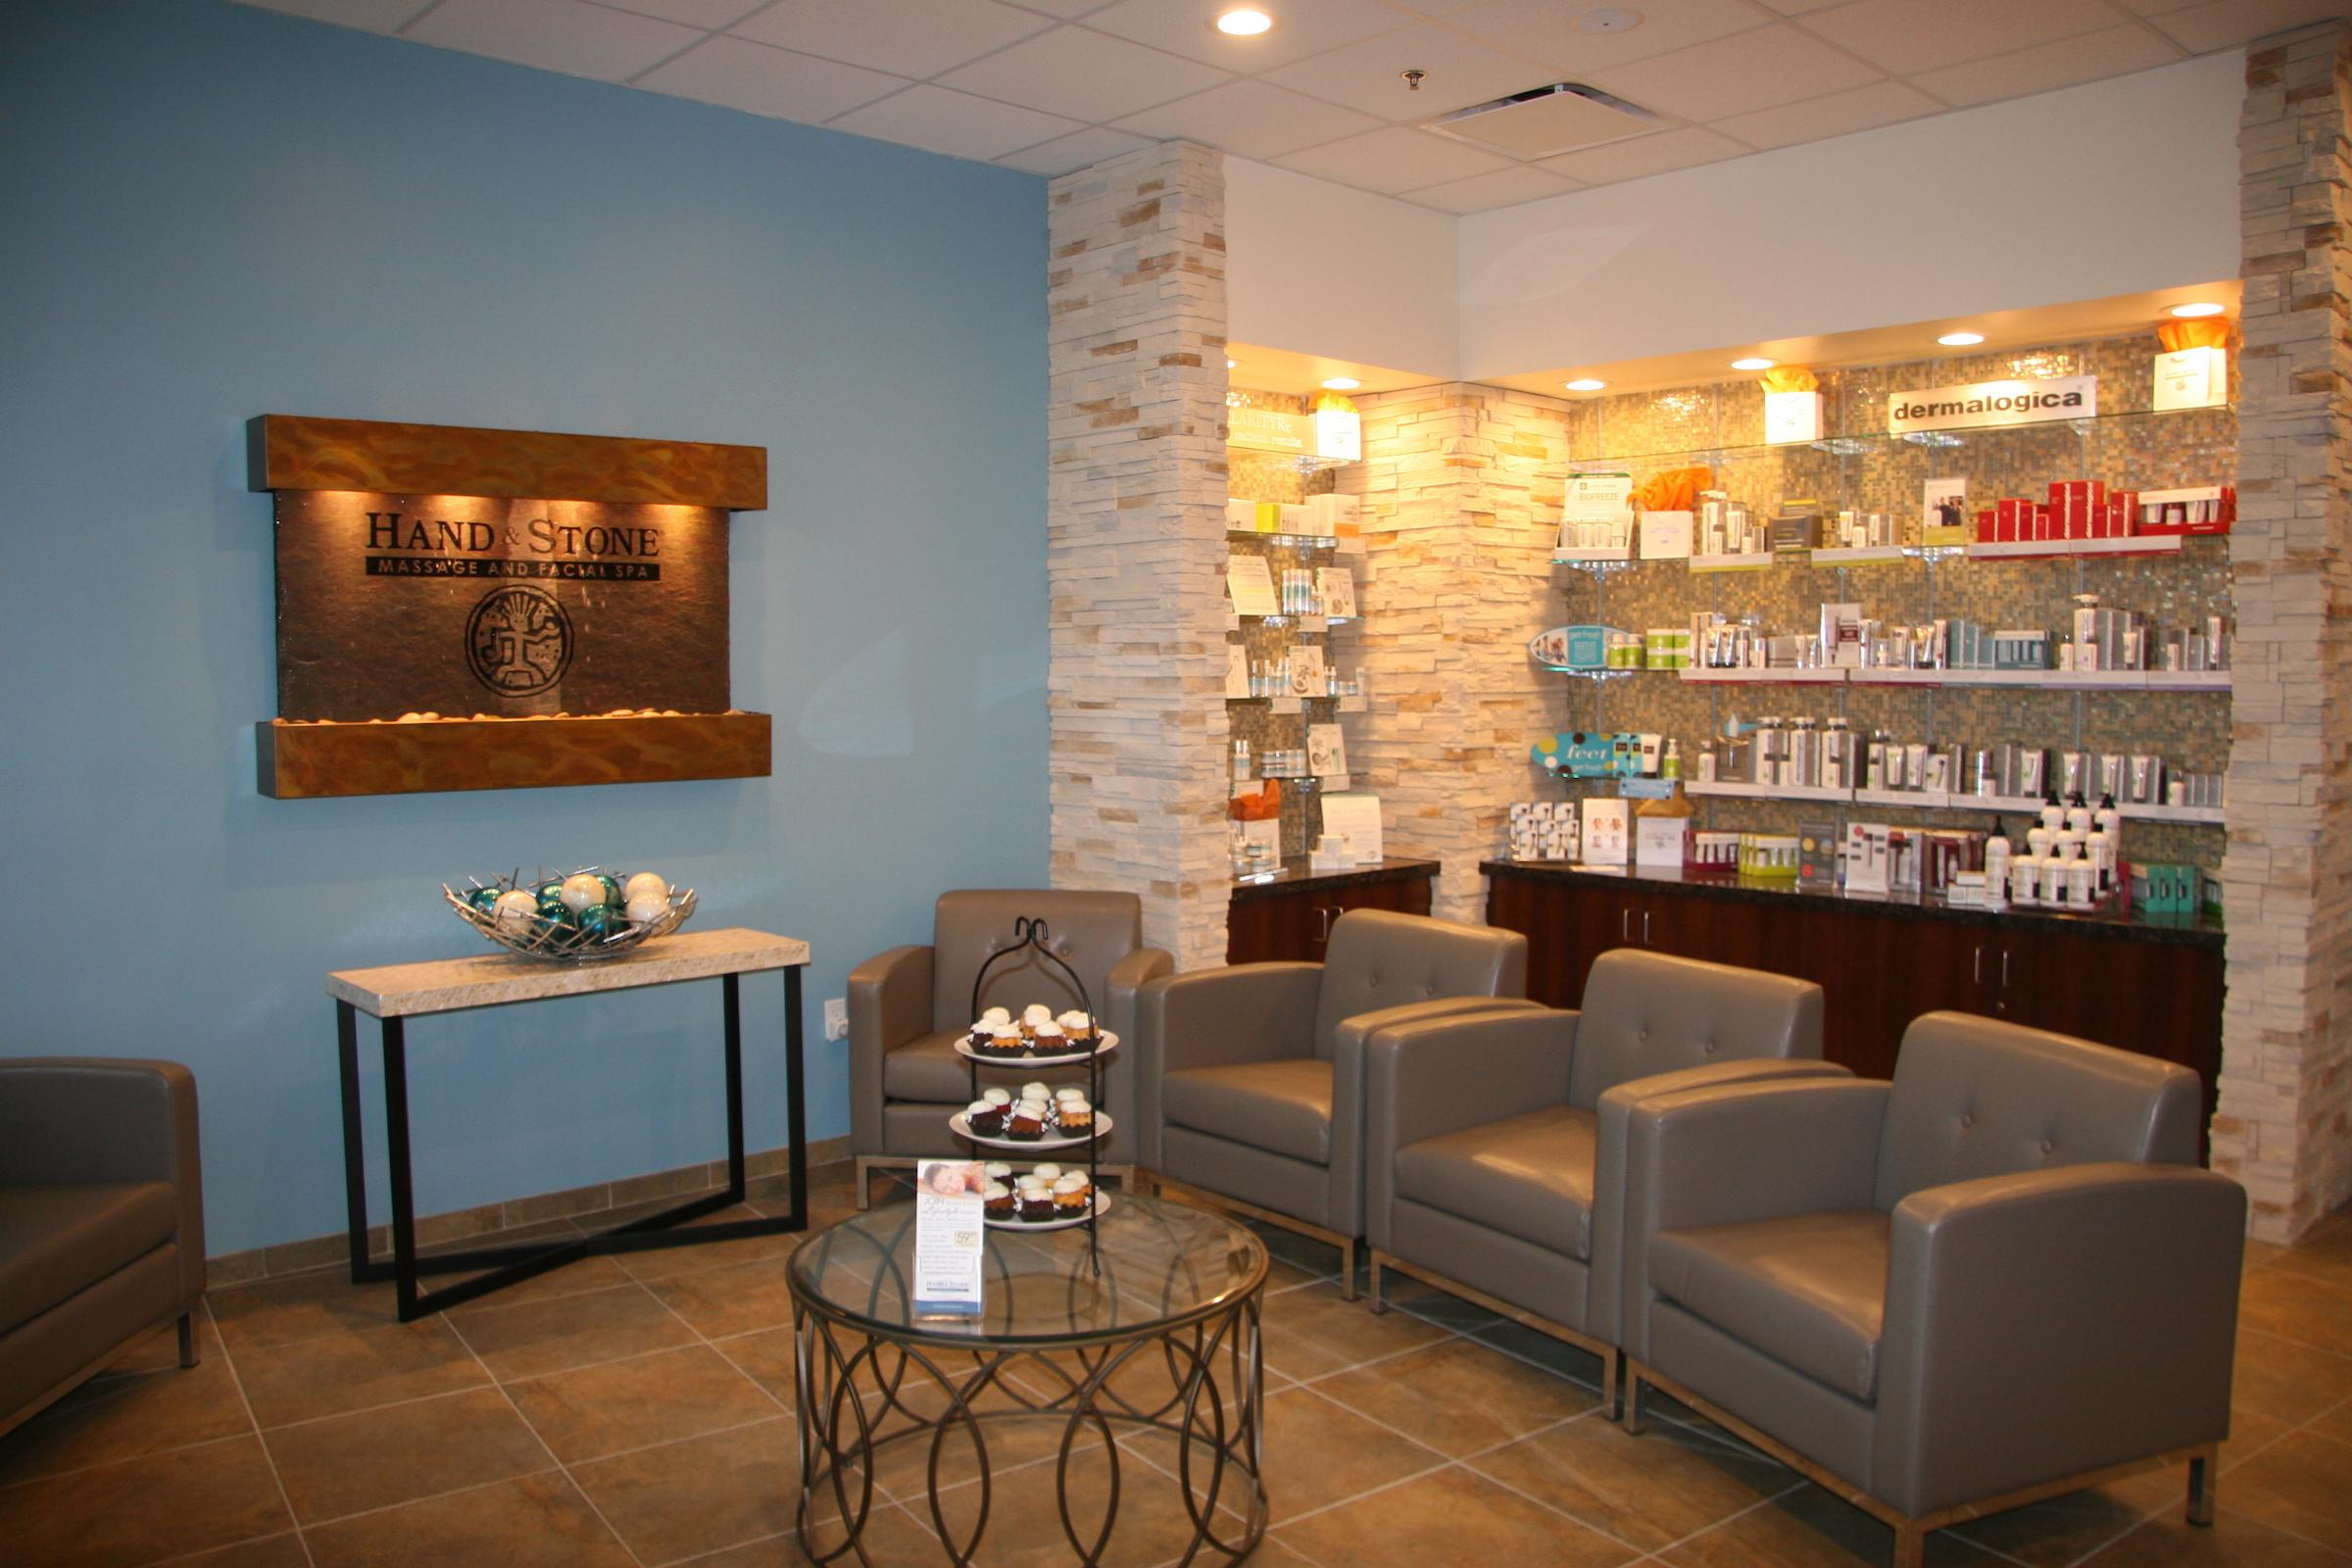 Relax, and check out our amazing skin care selection.  Prepare to be pampered!